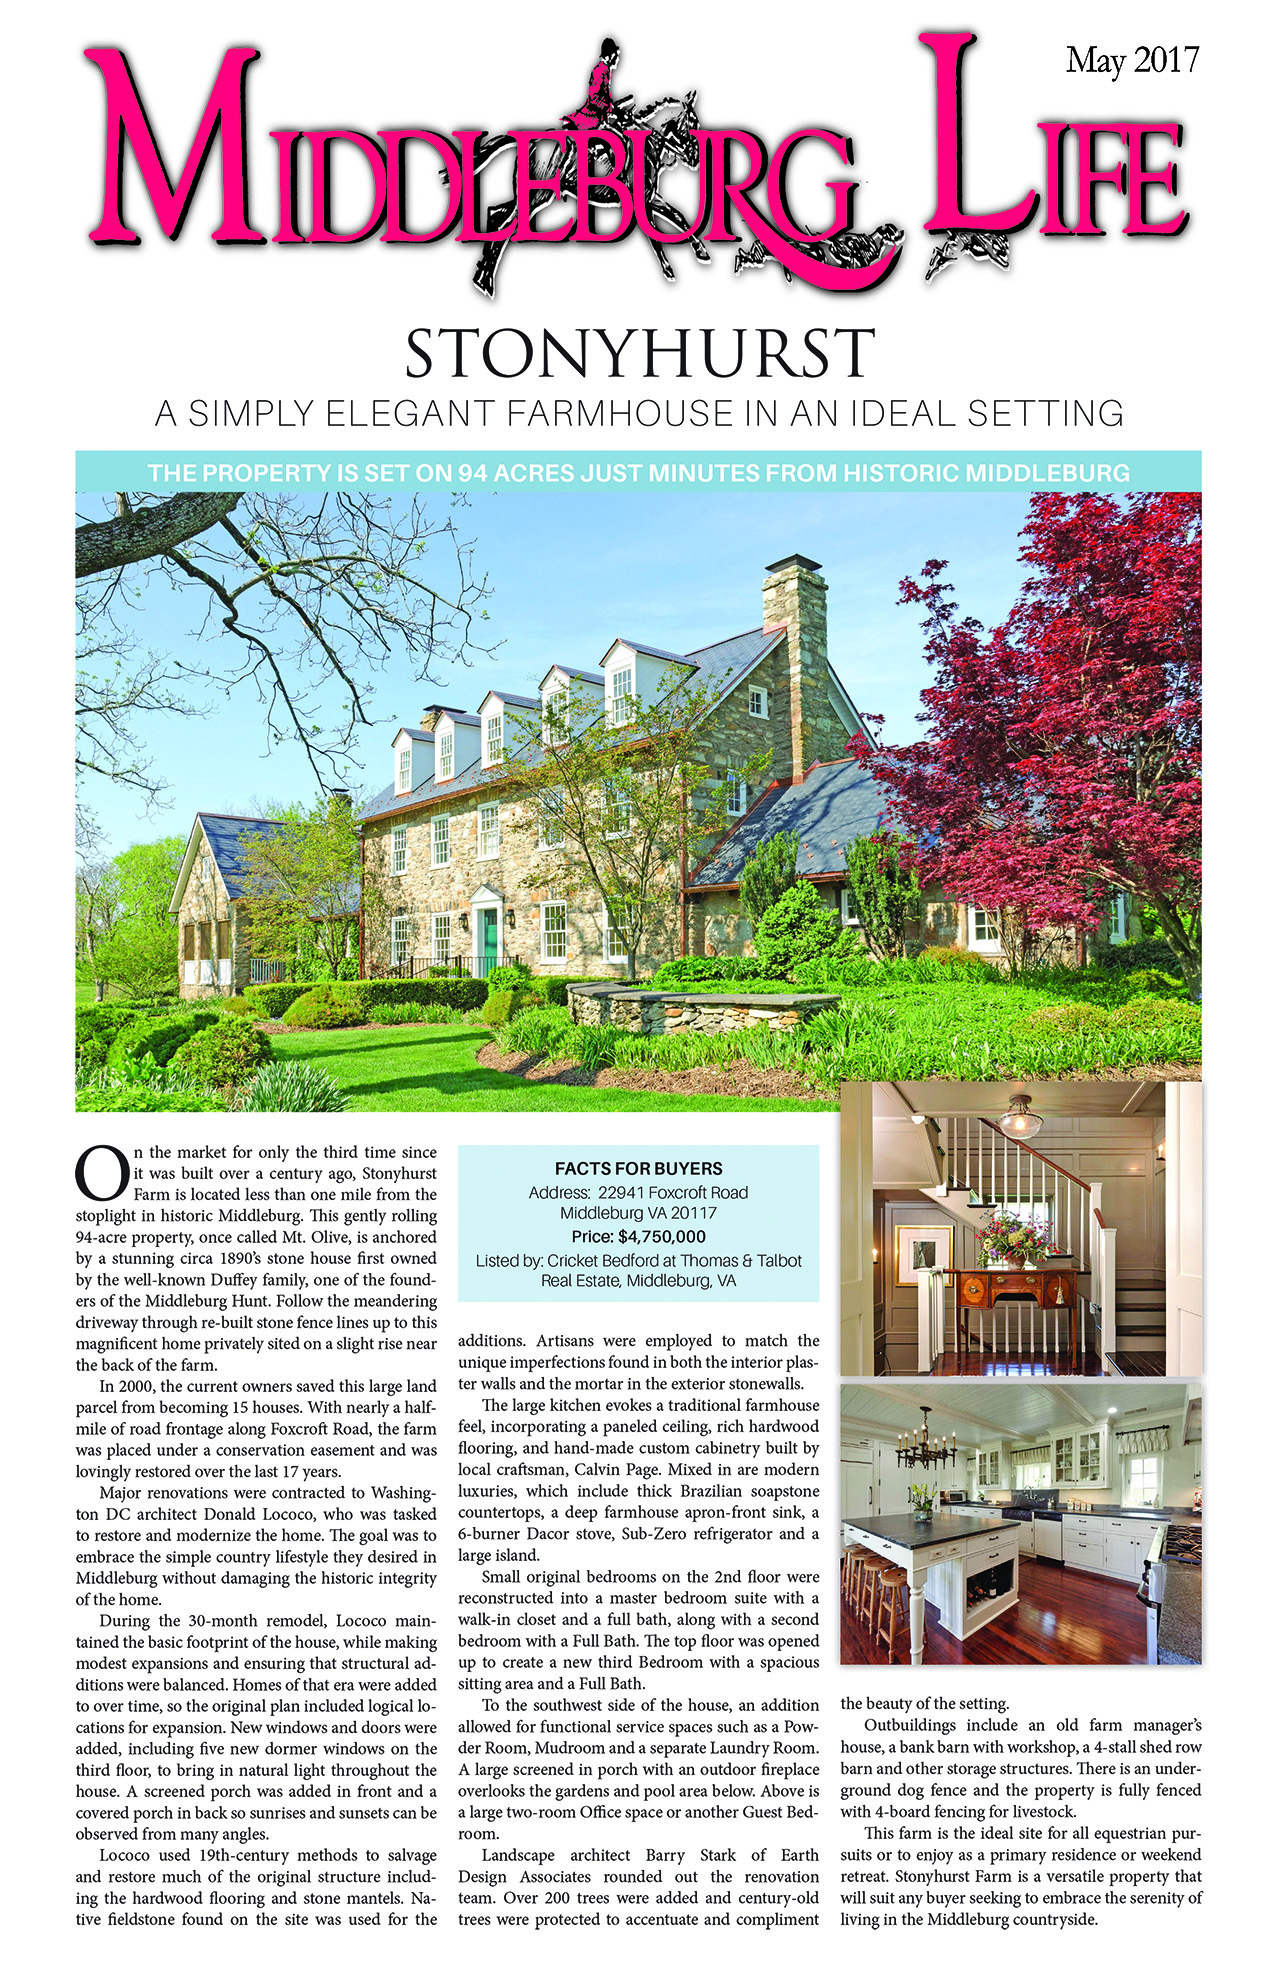 Thomas Talbot Exclusive Real Estate Middleburg Virginia - In The News